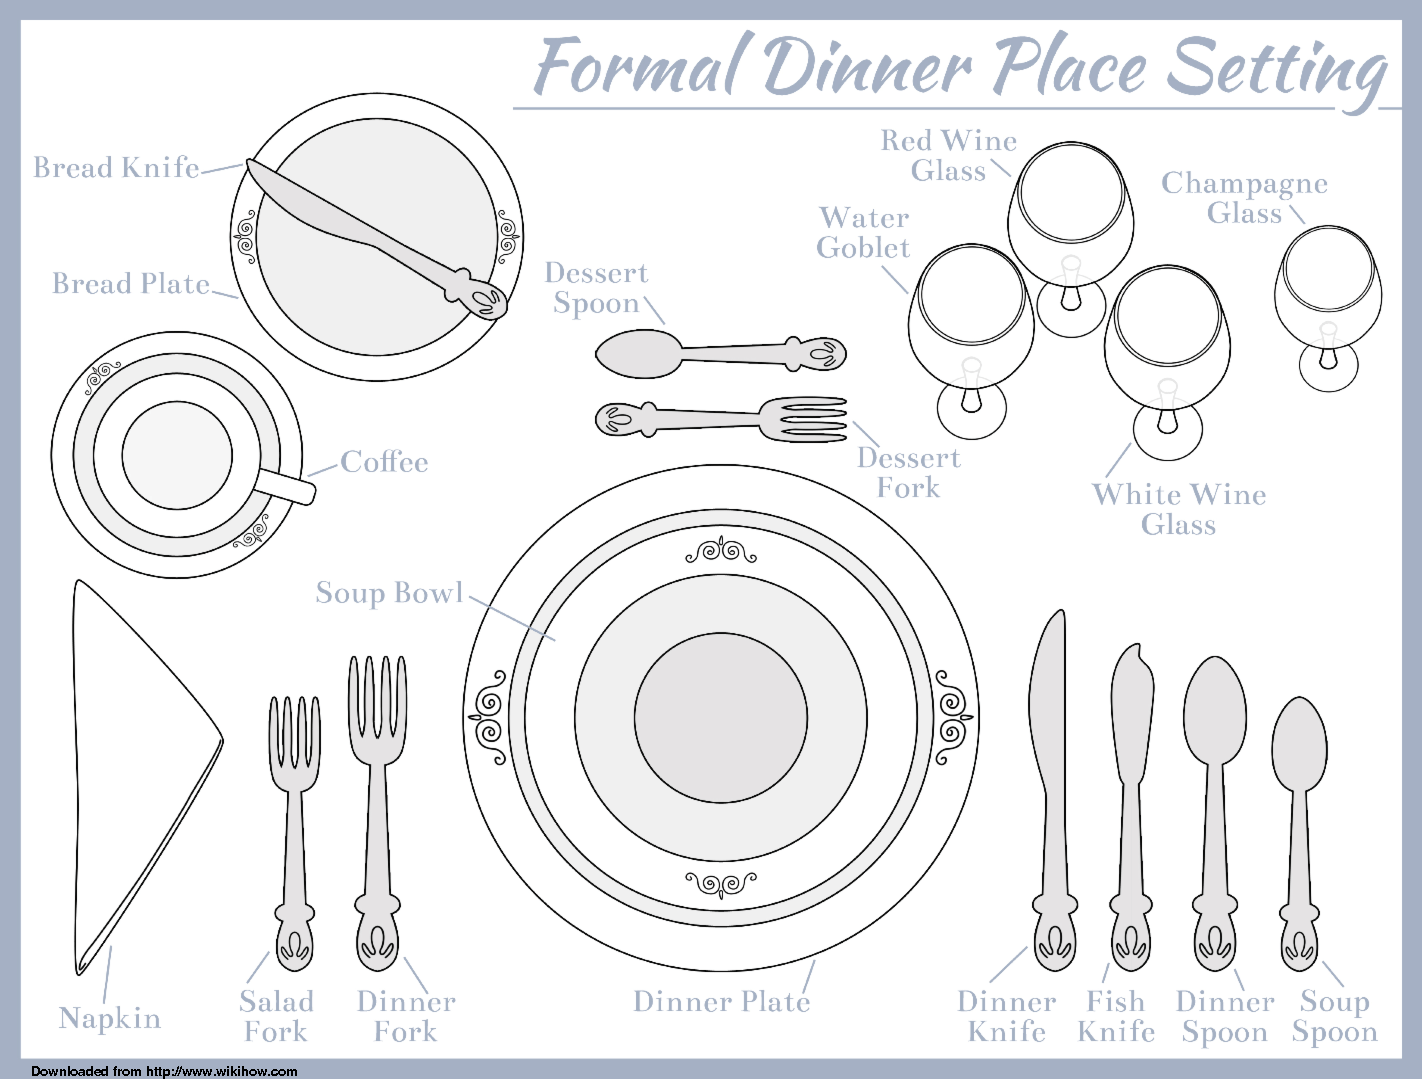 banquet table set up diagram isuzu npr 200 wiring best 25 43 7 course meal ideas on pinterest 5